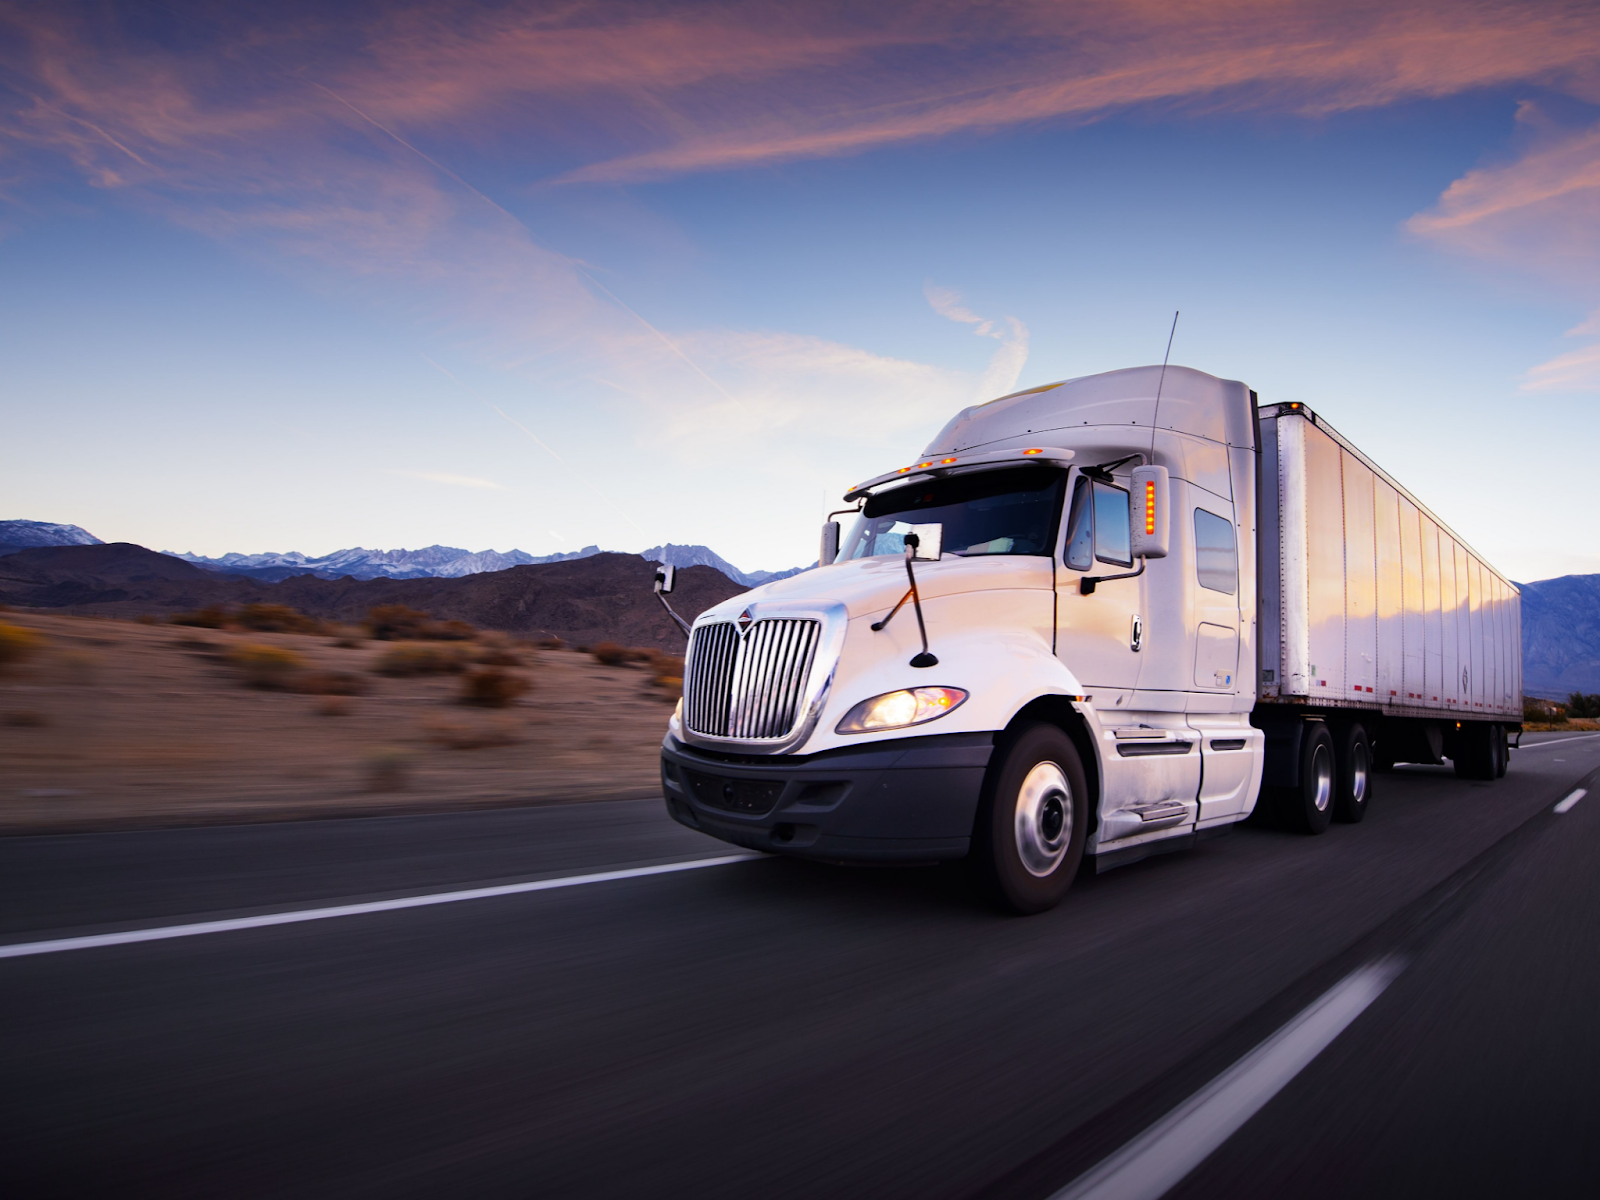 Key Points To Remember Before Taking Insurance Cover For Your Trucks